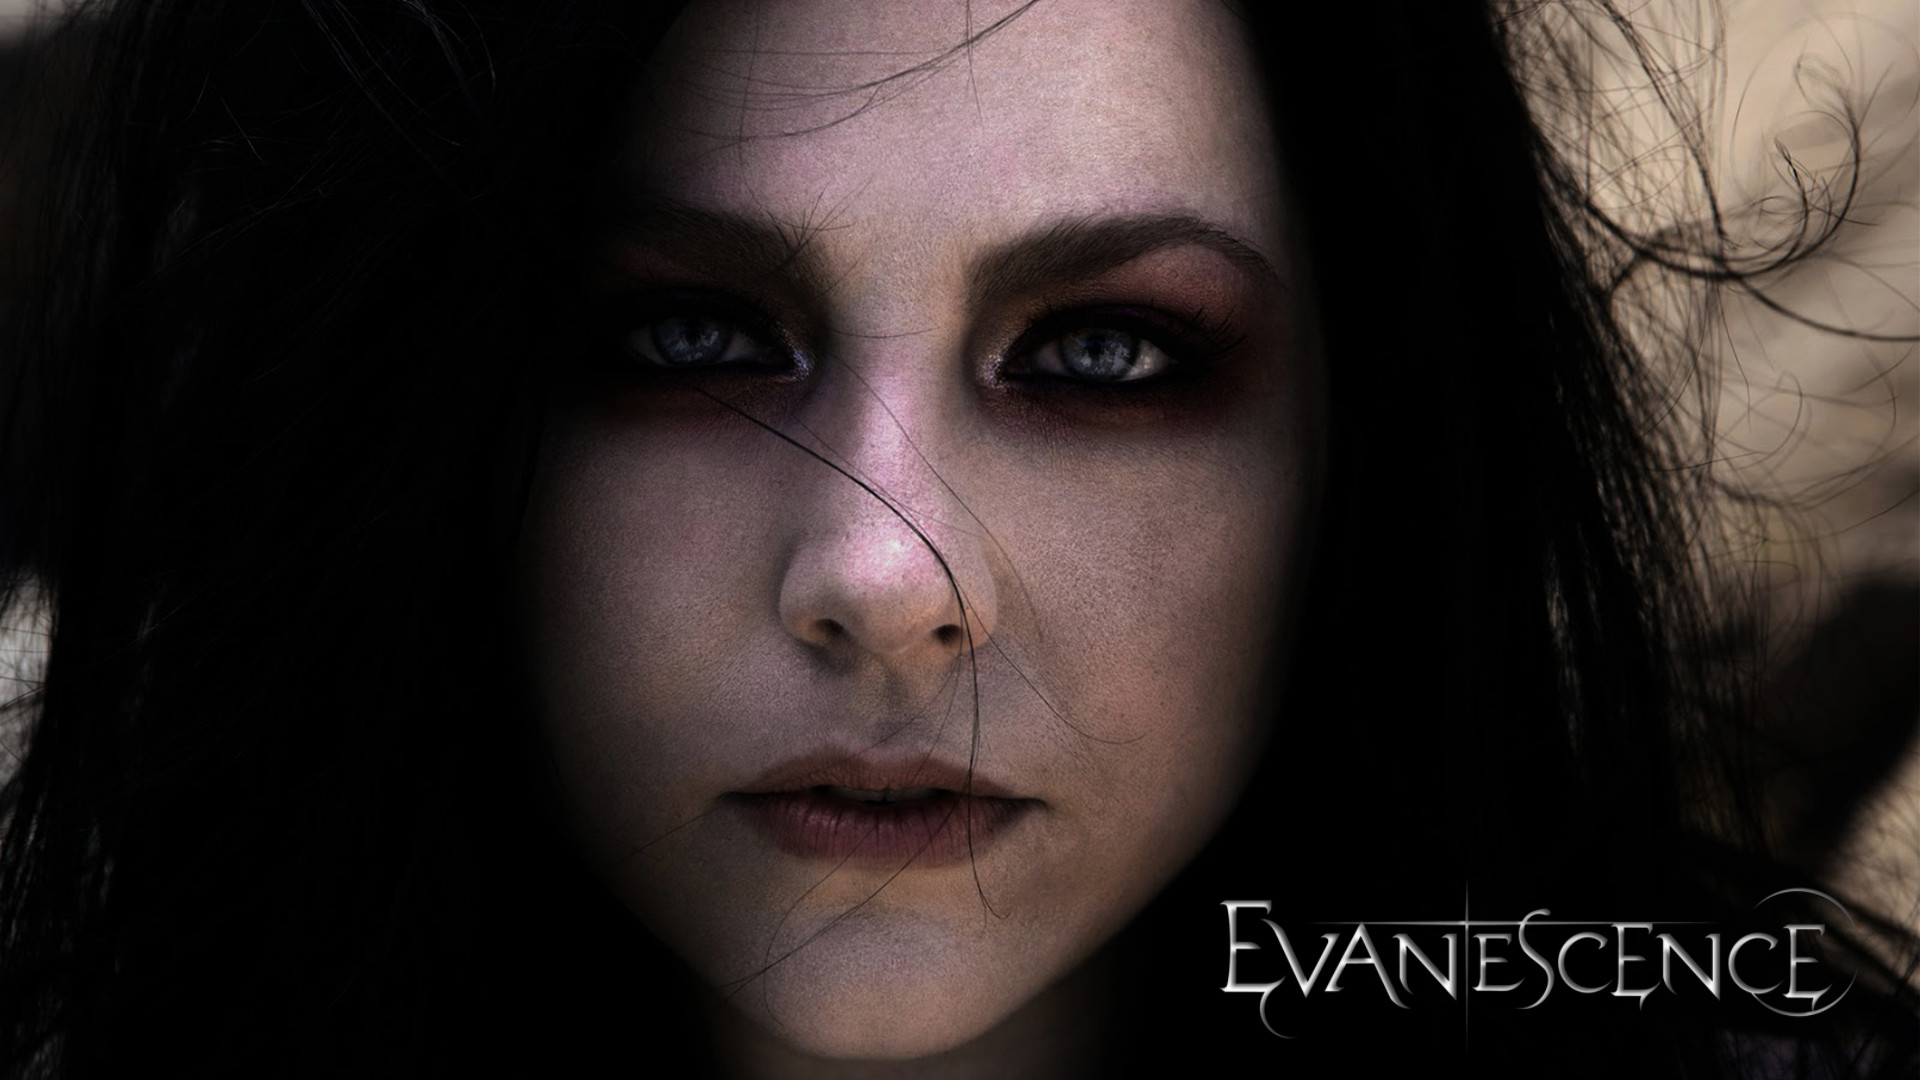 1920x1080 Amy Lee Evanescence Fresh Hd Wallpaper Pictures to pin on Pinterest